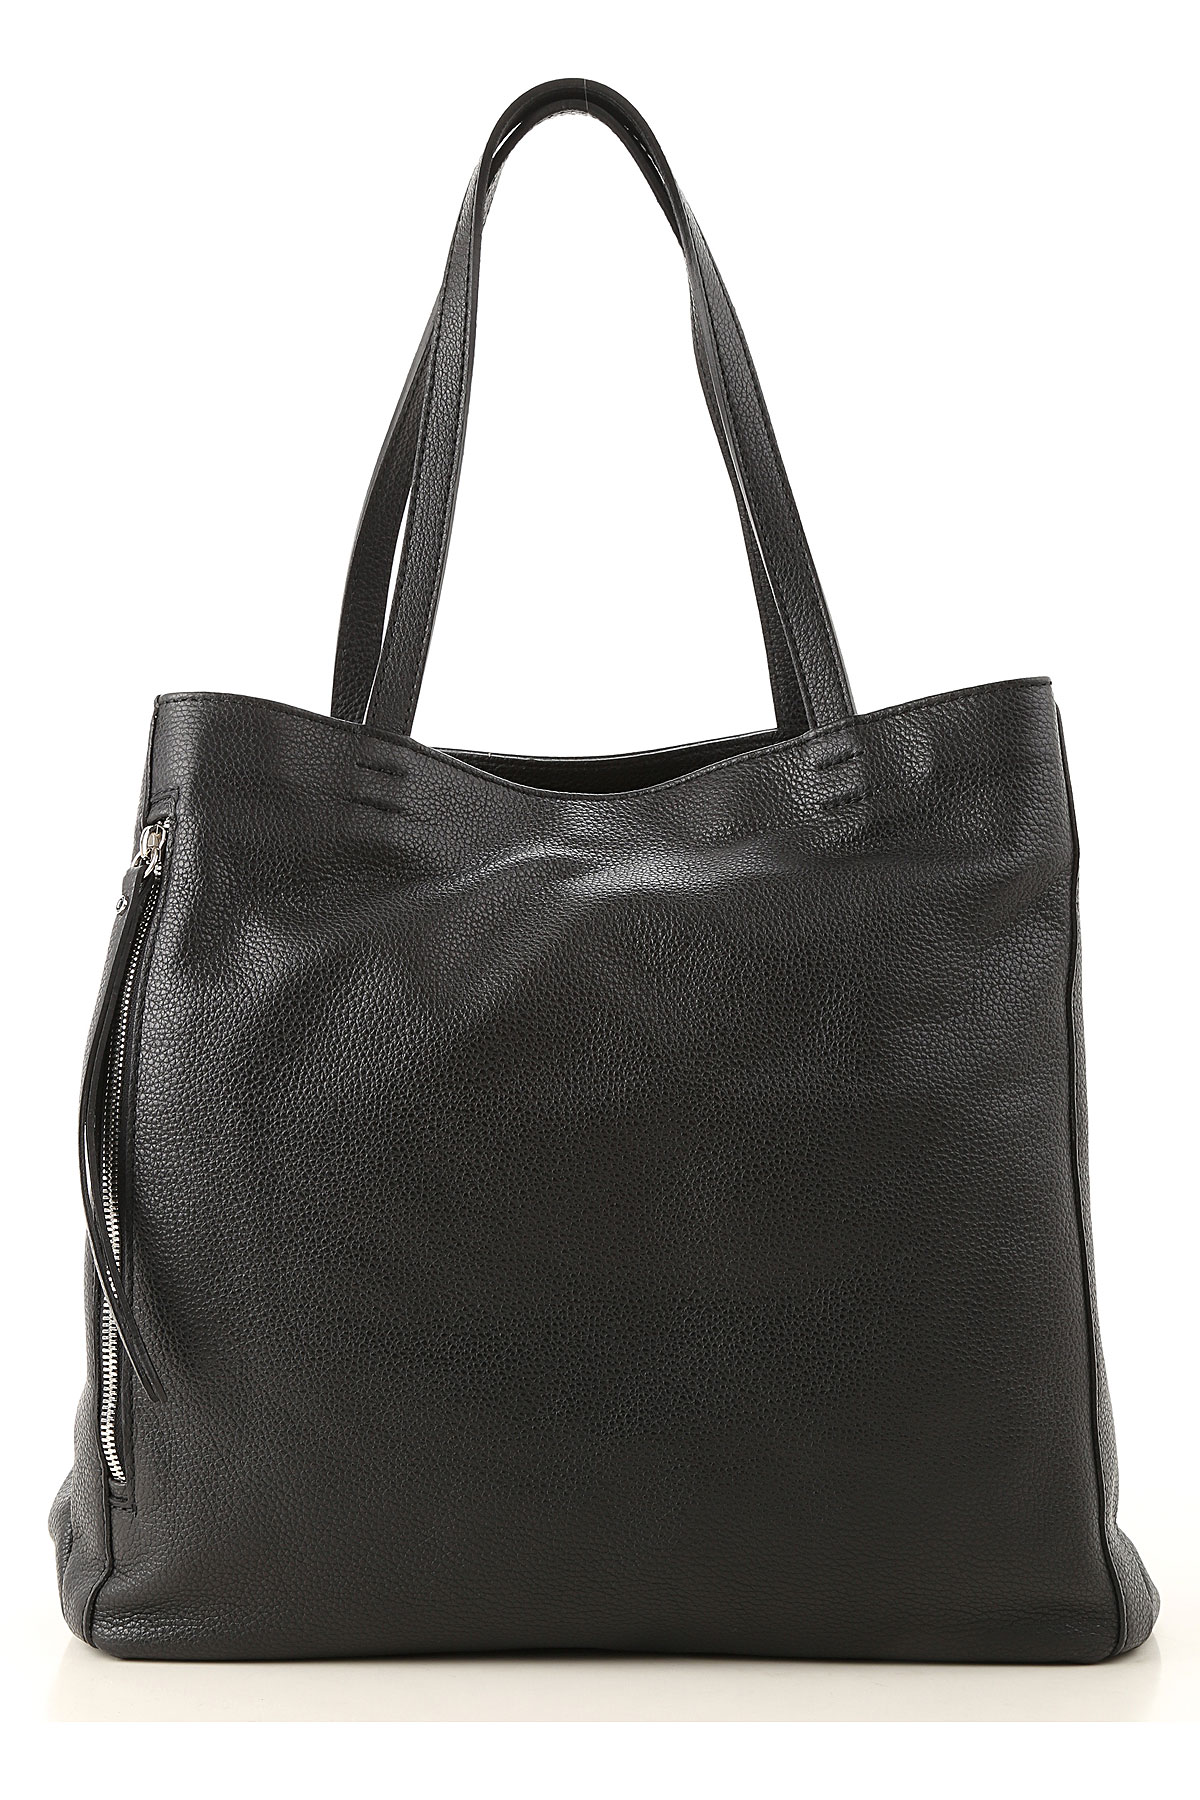 Image of Gianni Chiarini Tote Bag, Black, Leather, 2017